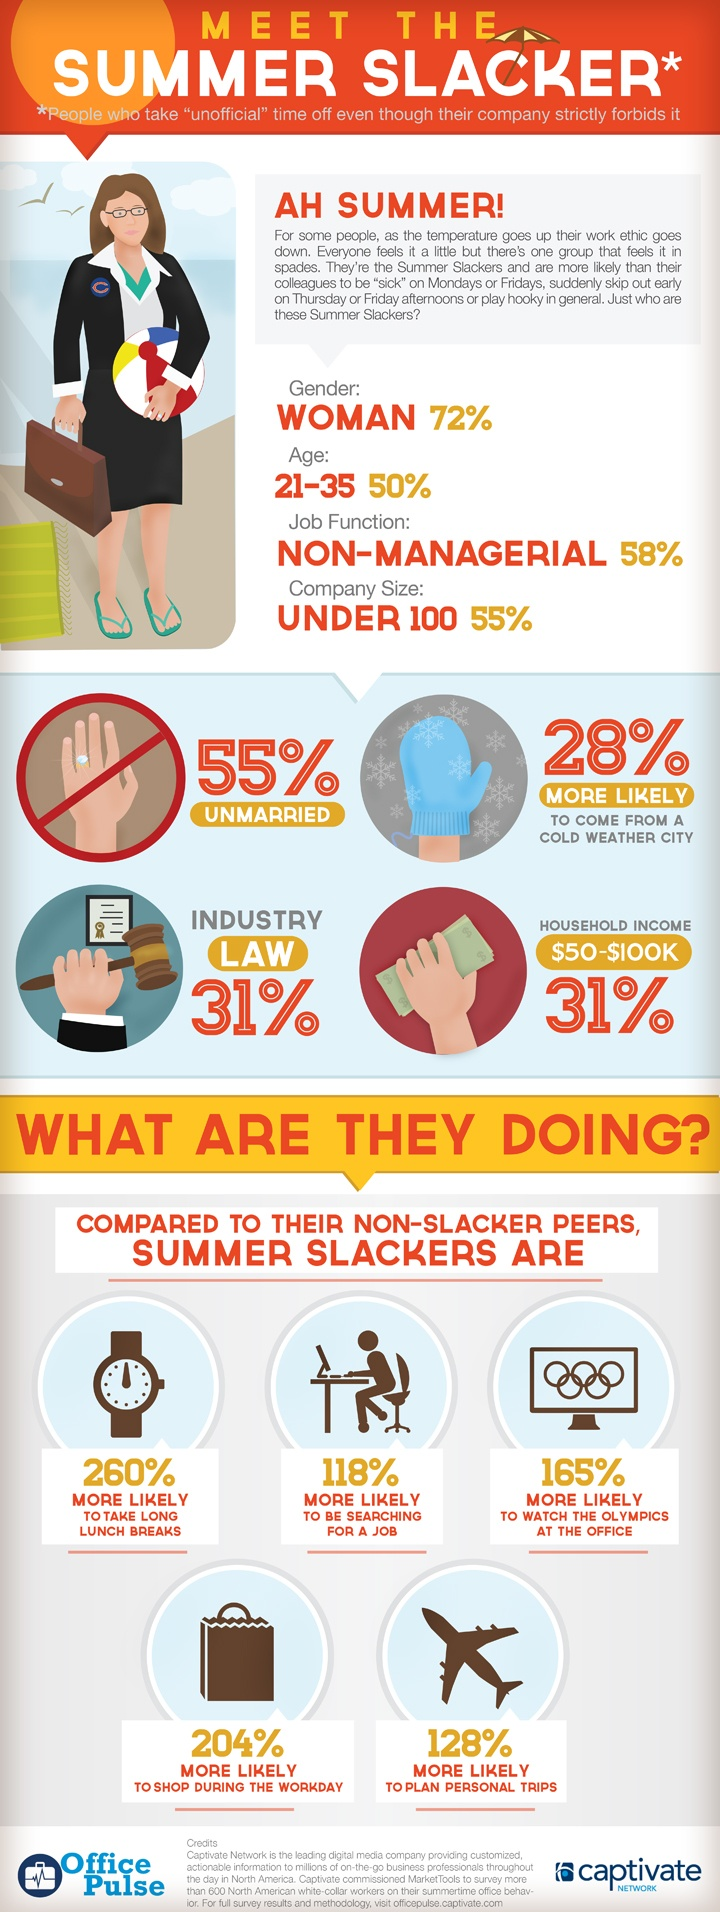 best images about work ethics motivational the summer slacker for some people as the temperature goes up their work ethic